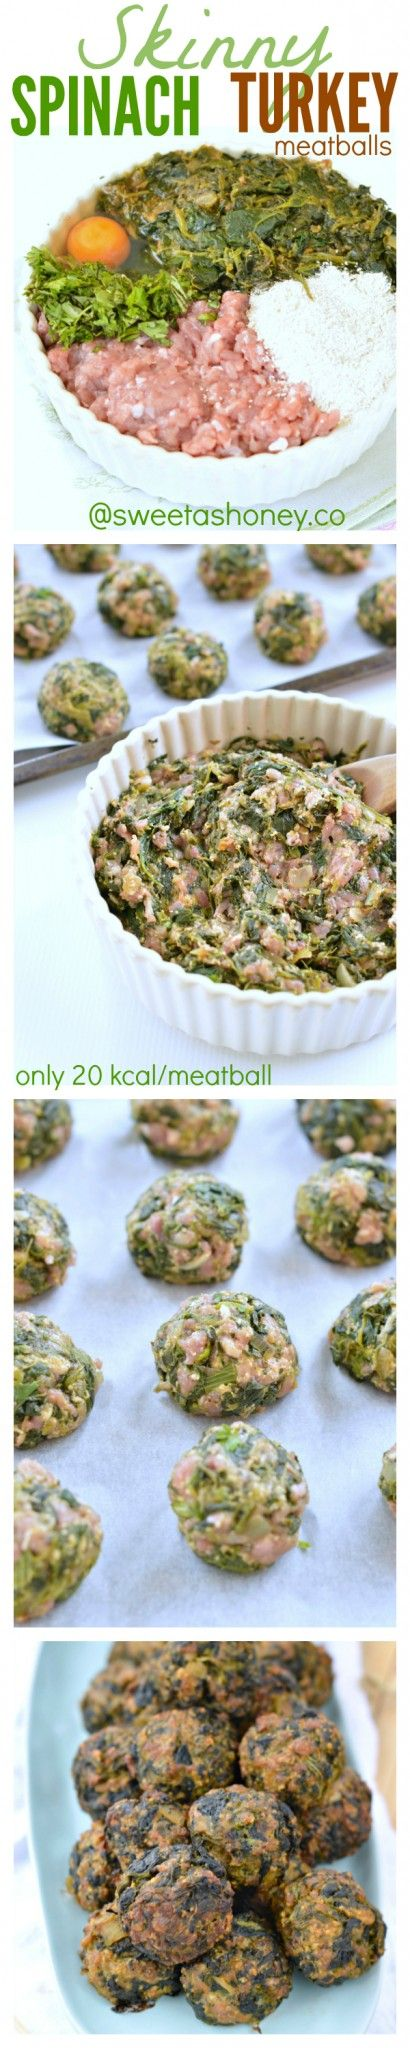 Spinach Turkey Meatballs a perfect clean eating appetizer. Skinny meatballs recipe with only 20 kcal/meatballs and only wholesome ingredients. Gluten free meatballs and dairy free meatballs too! #SmartHealthTalk can only recommend #organic ingredients for this recipe.  For health and safety.